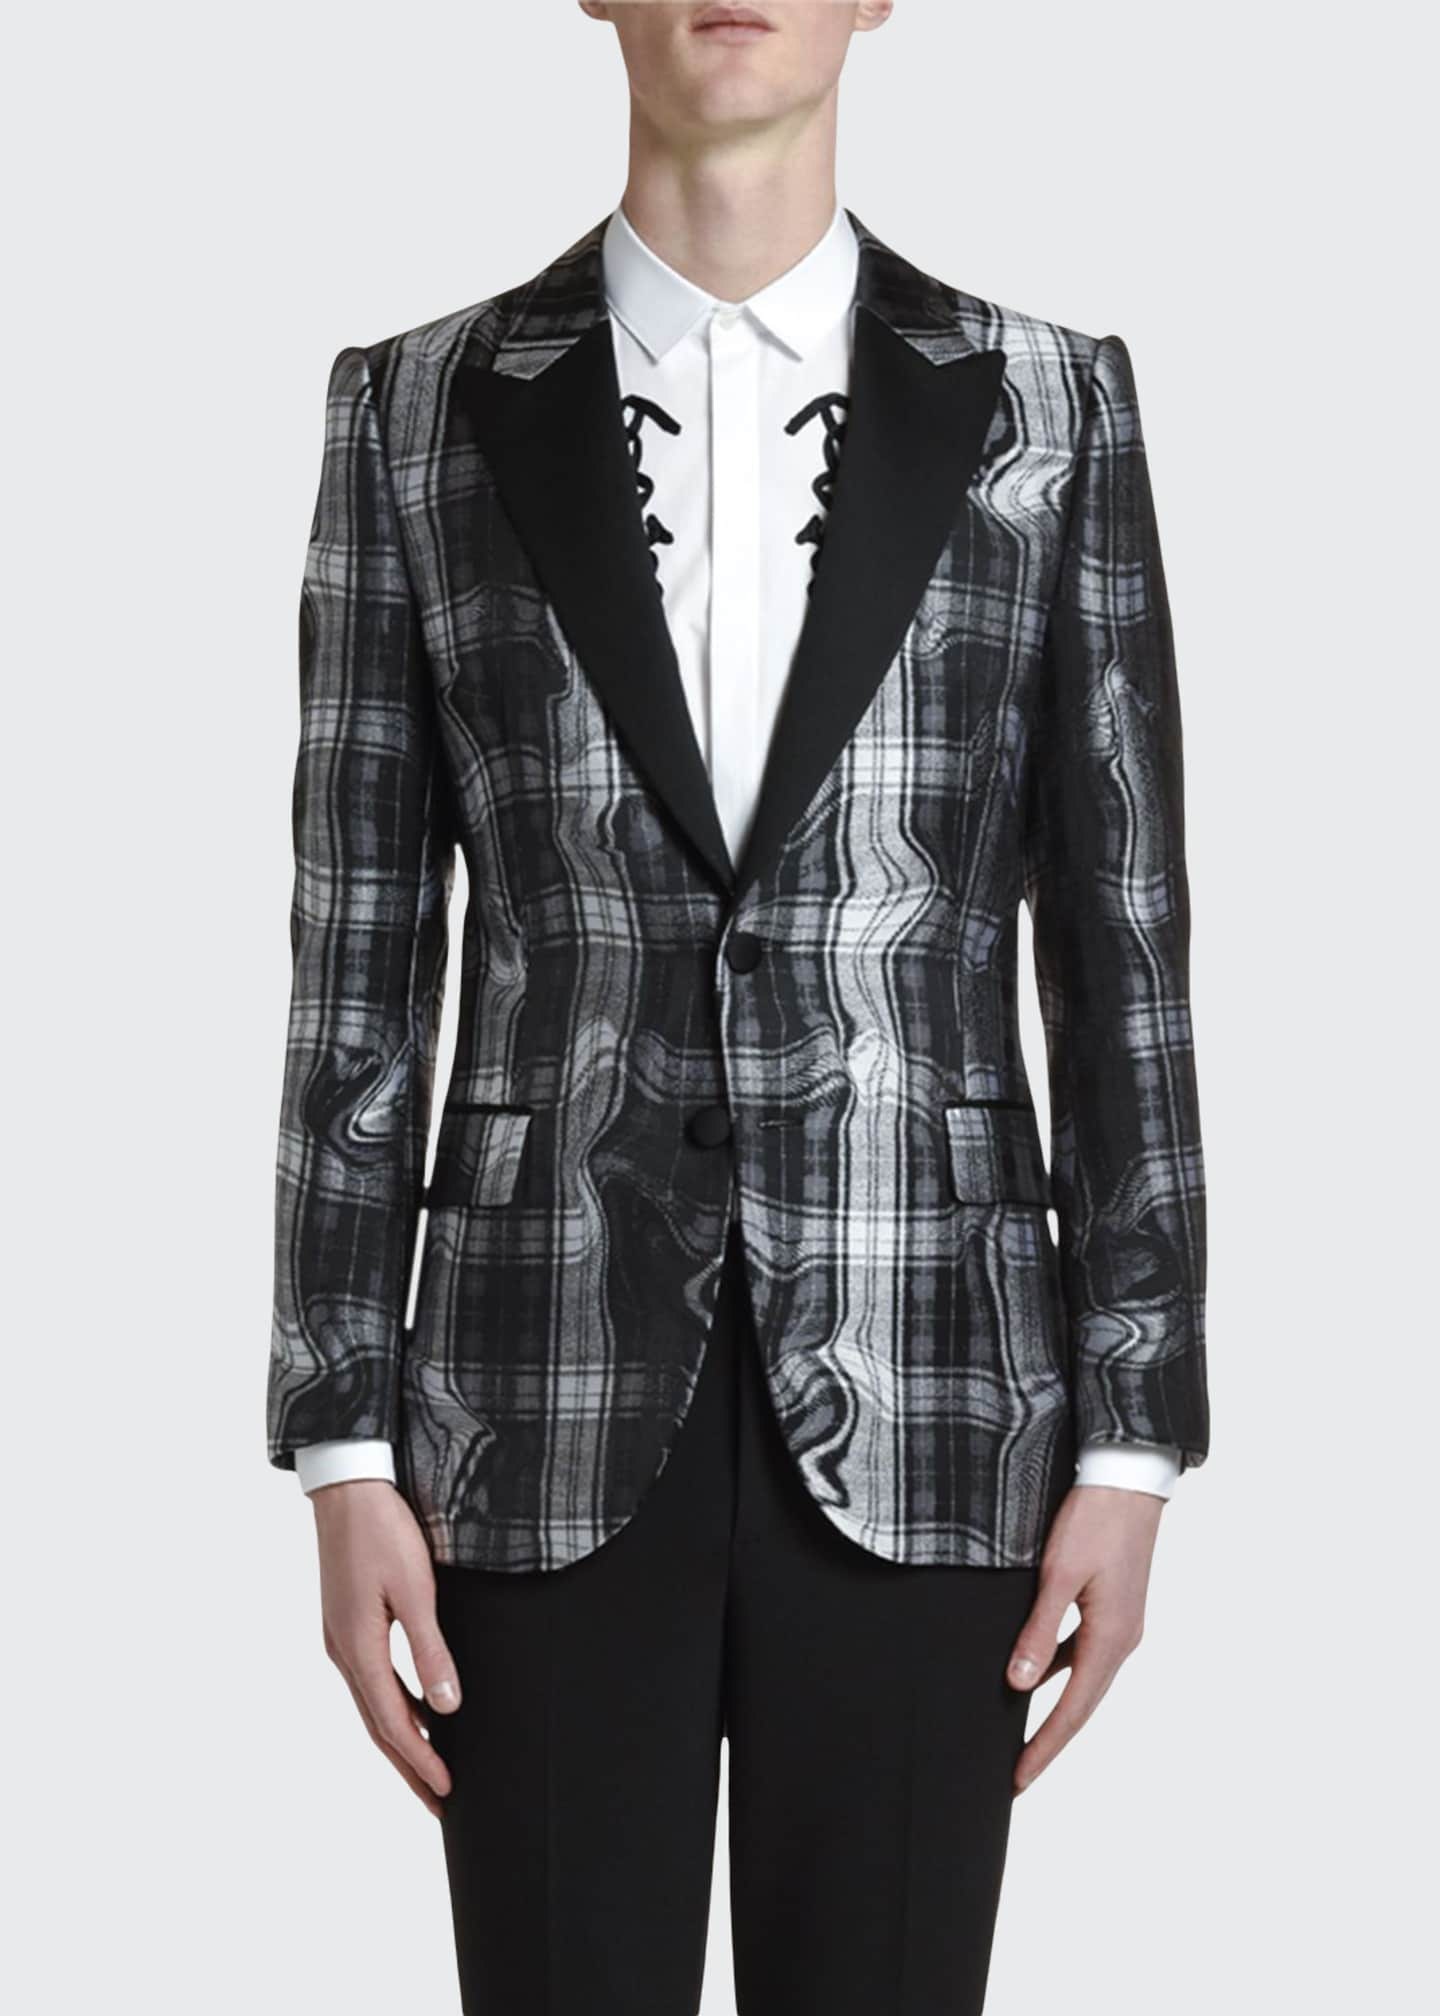 Neil Barrett Men's Distorted Tartan Jacquard Two-Button Jacket